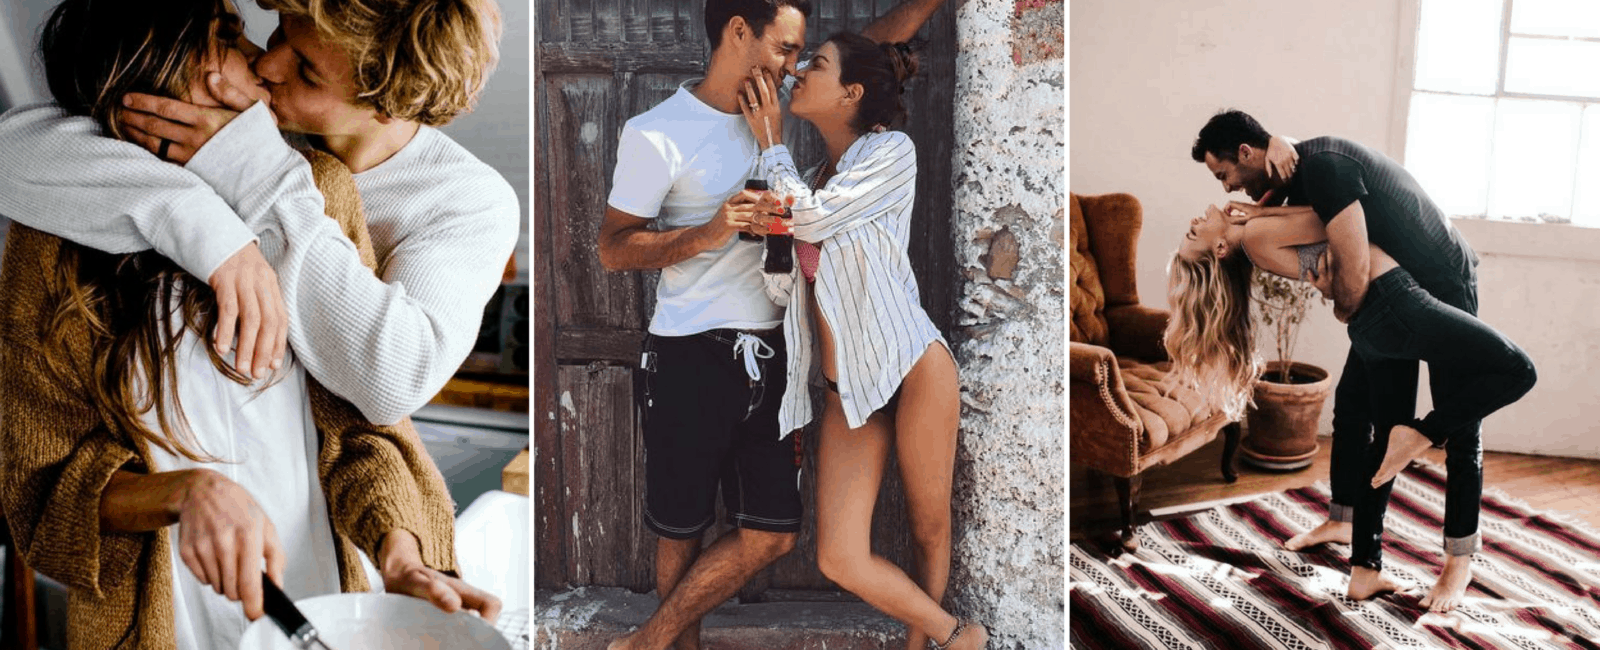 31 BUDGET FRIENDLY DATE NIGHT IDEAS YOU HAVE TO TRY